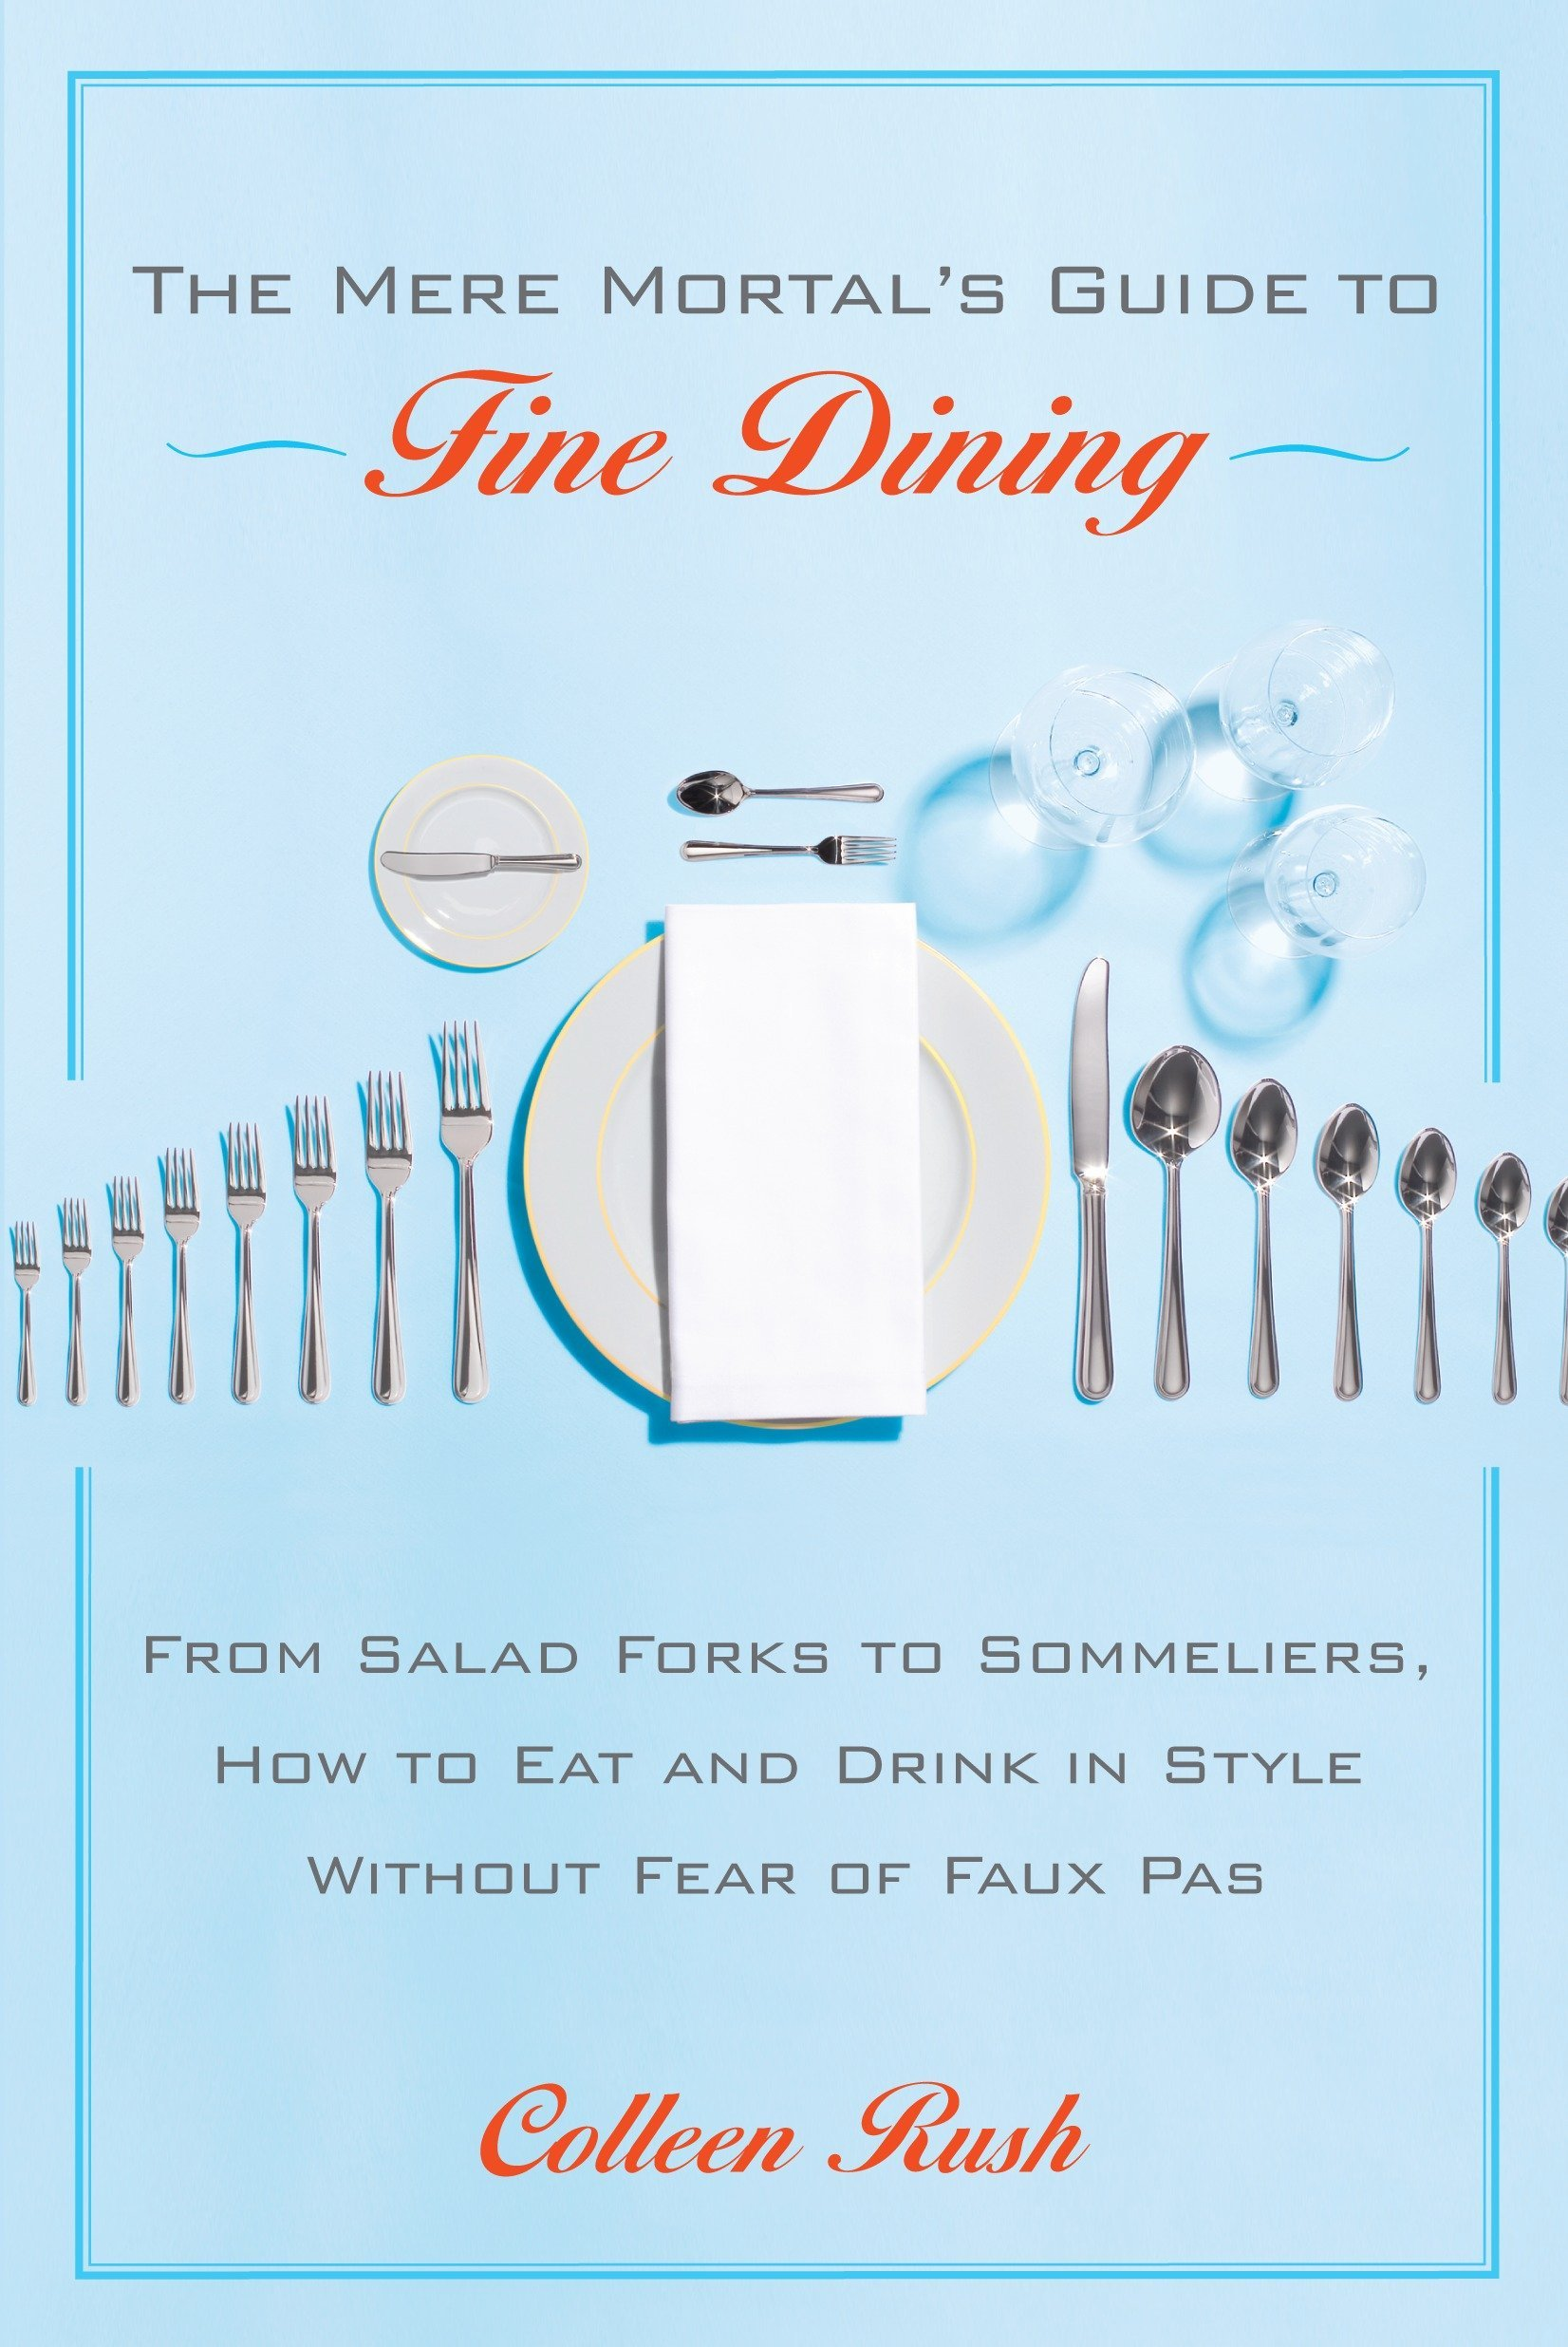 The Mere Mortal's Guide to Fine Dining: From Salad Forks to Sommeliers, How to Eat and Drink in Style Without Fear of Faux Pas PDF